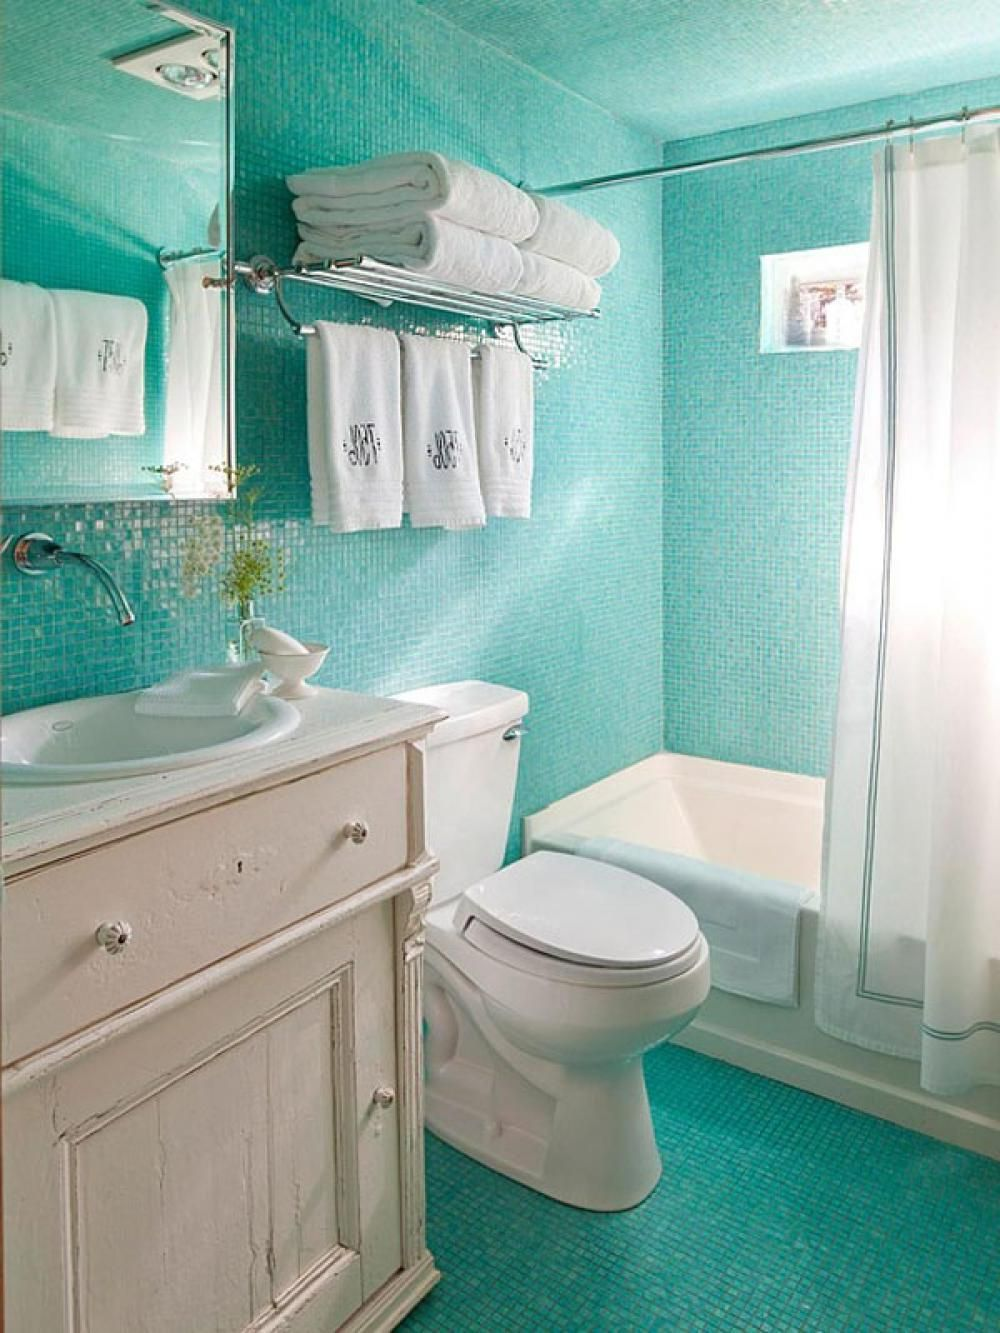 Chic Turquoise Mosaic Tiles Ocean Inspired Bathroom With White - Fancy towels for small bathroom ideas